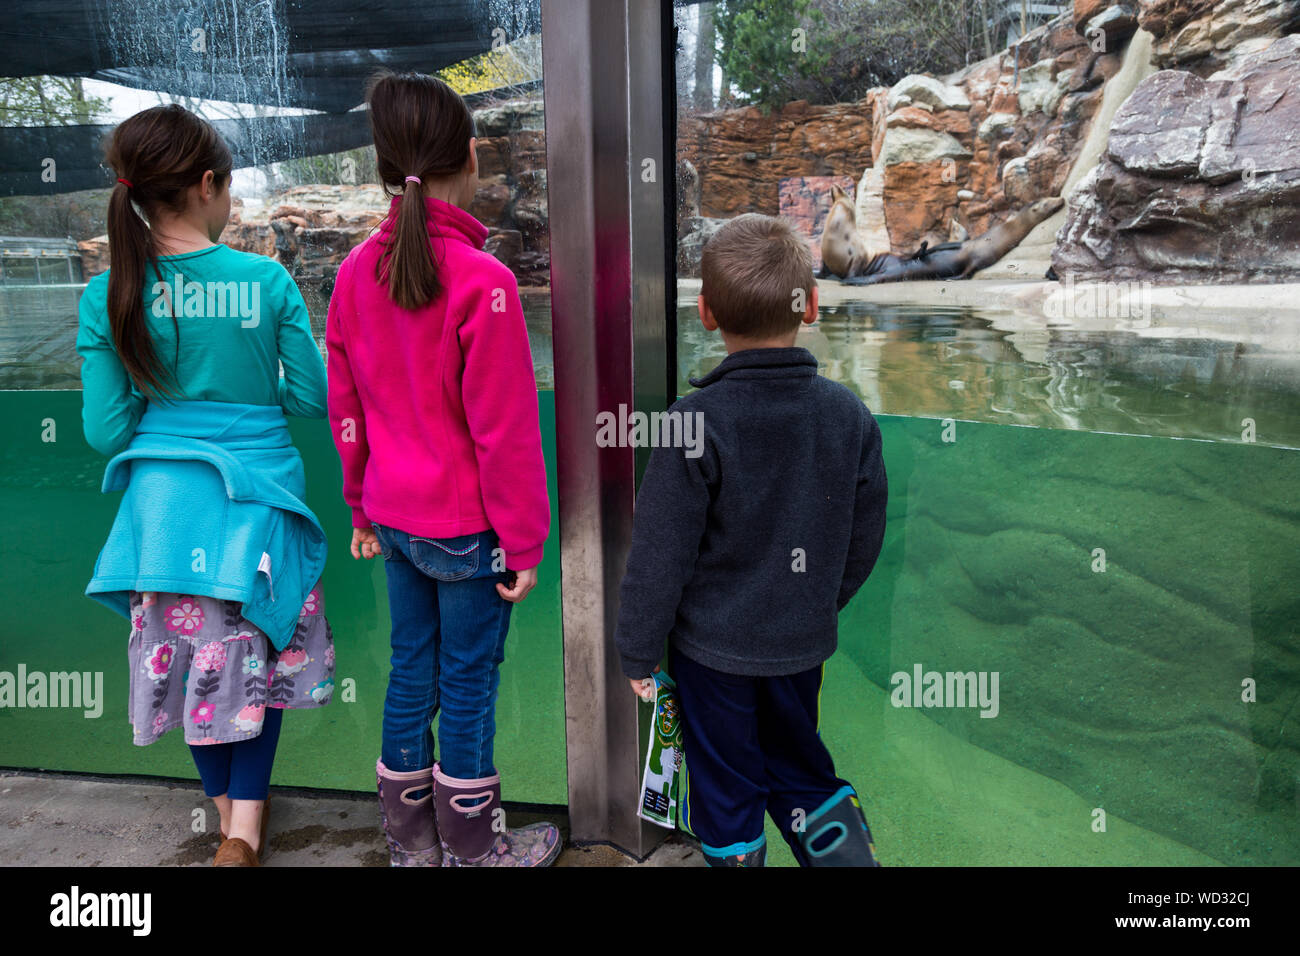 Three children watch as the sea lions rest on the far side of their enclosure at the Fort Wayne Children's Zoo in Fort Wayne, Indiana, USA. Stock Photo